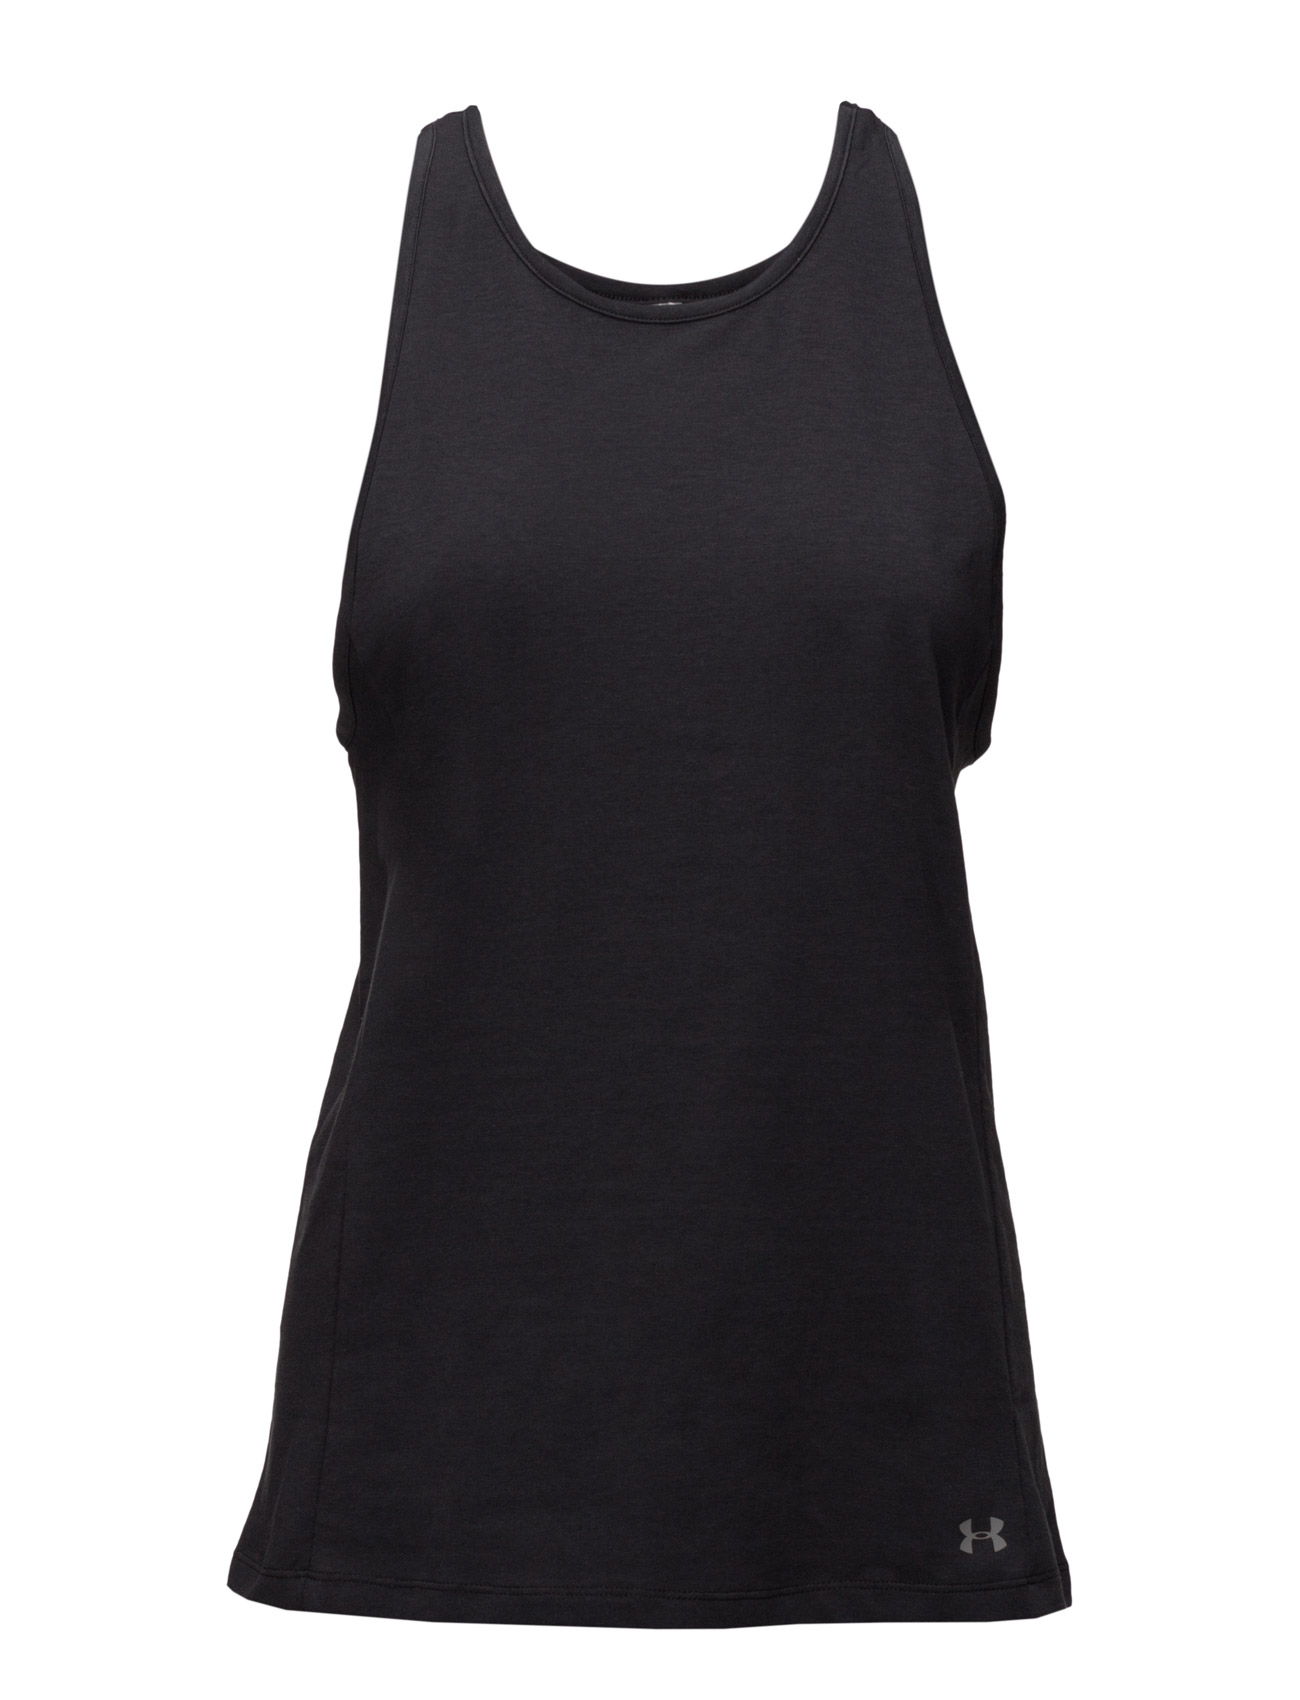 Favorite Tank Under Armour Sports toppe til Kvinder i